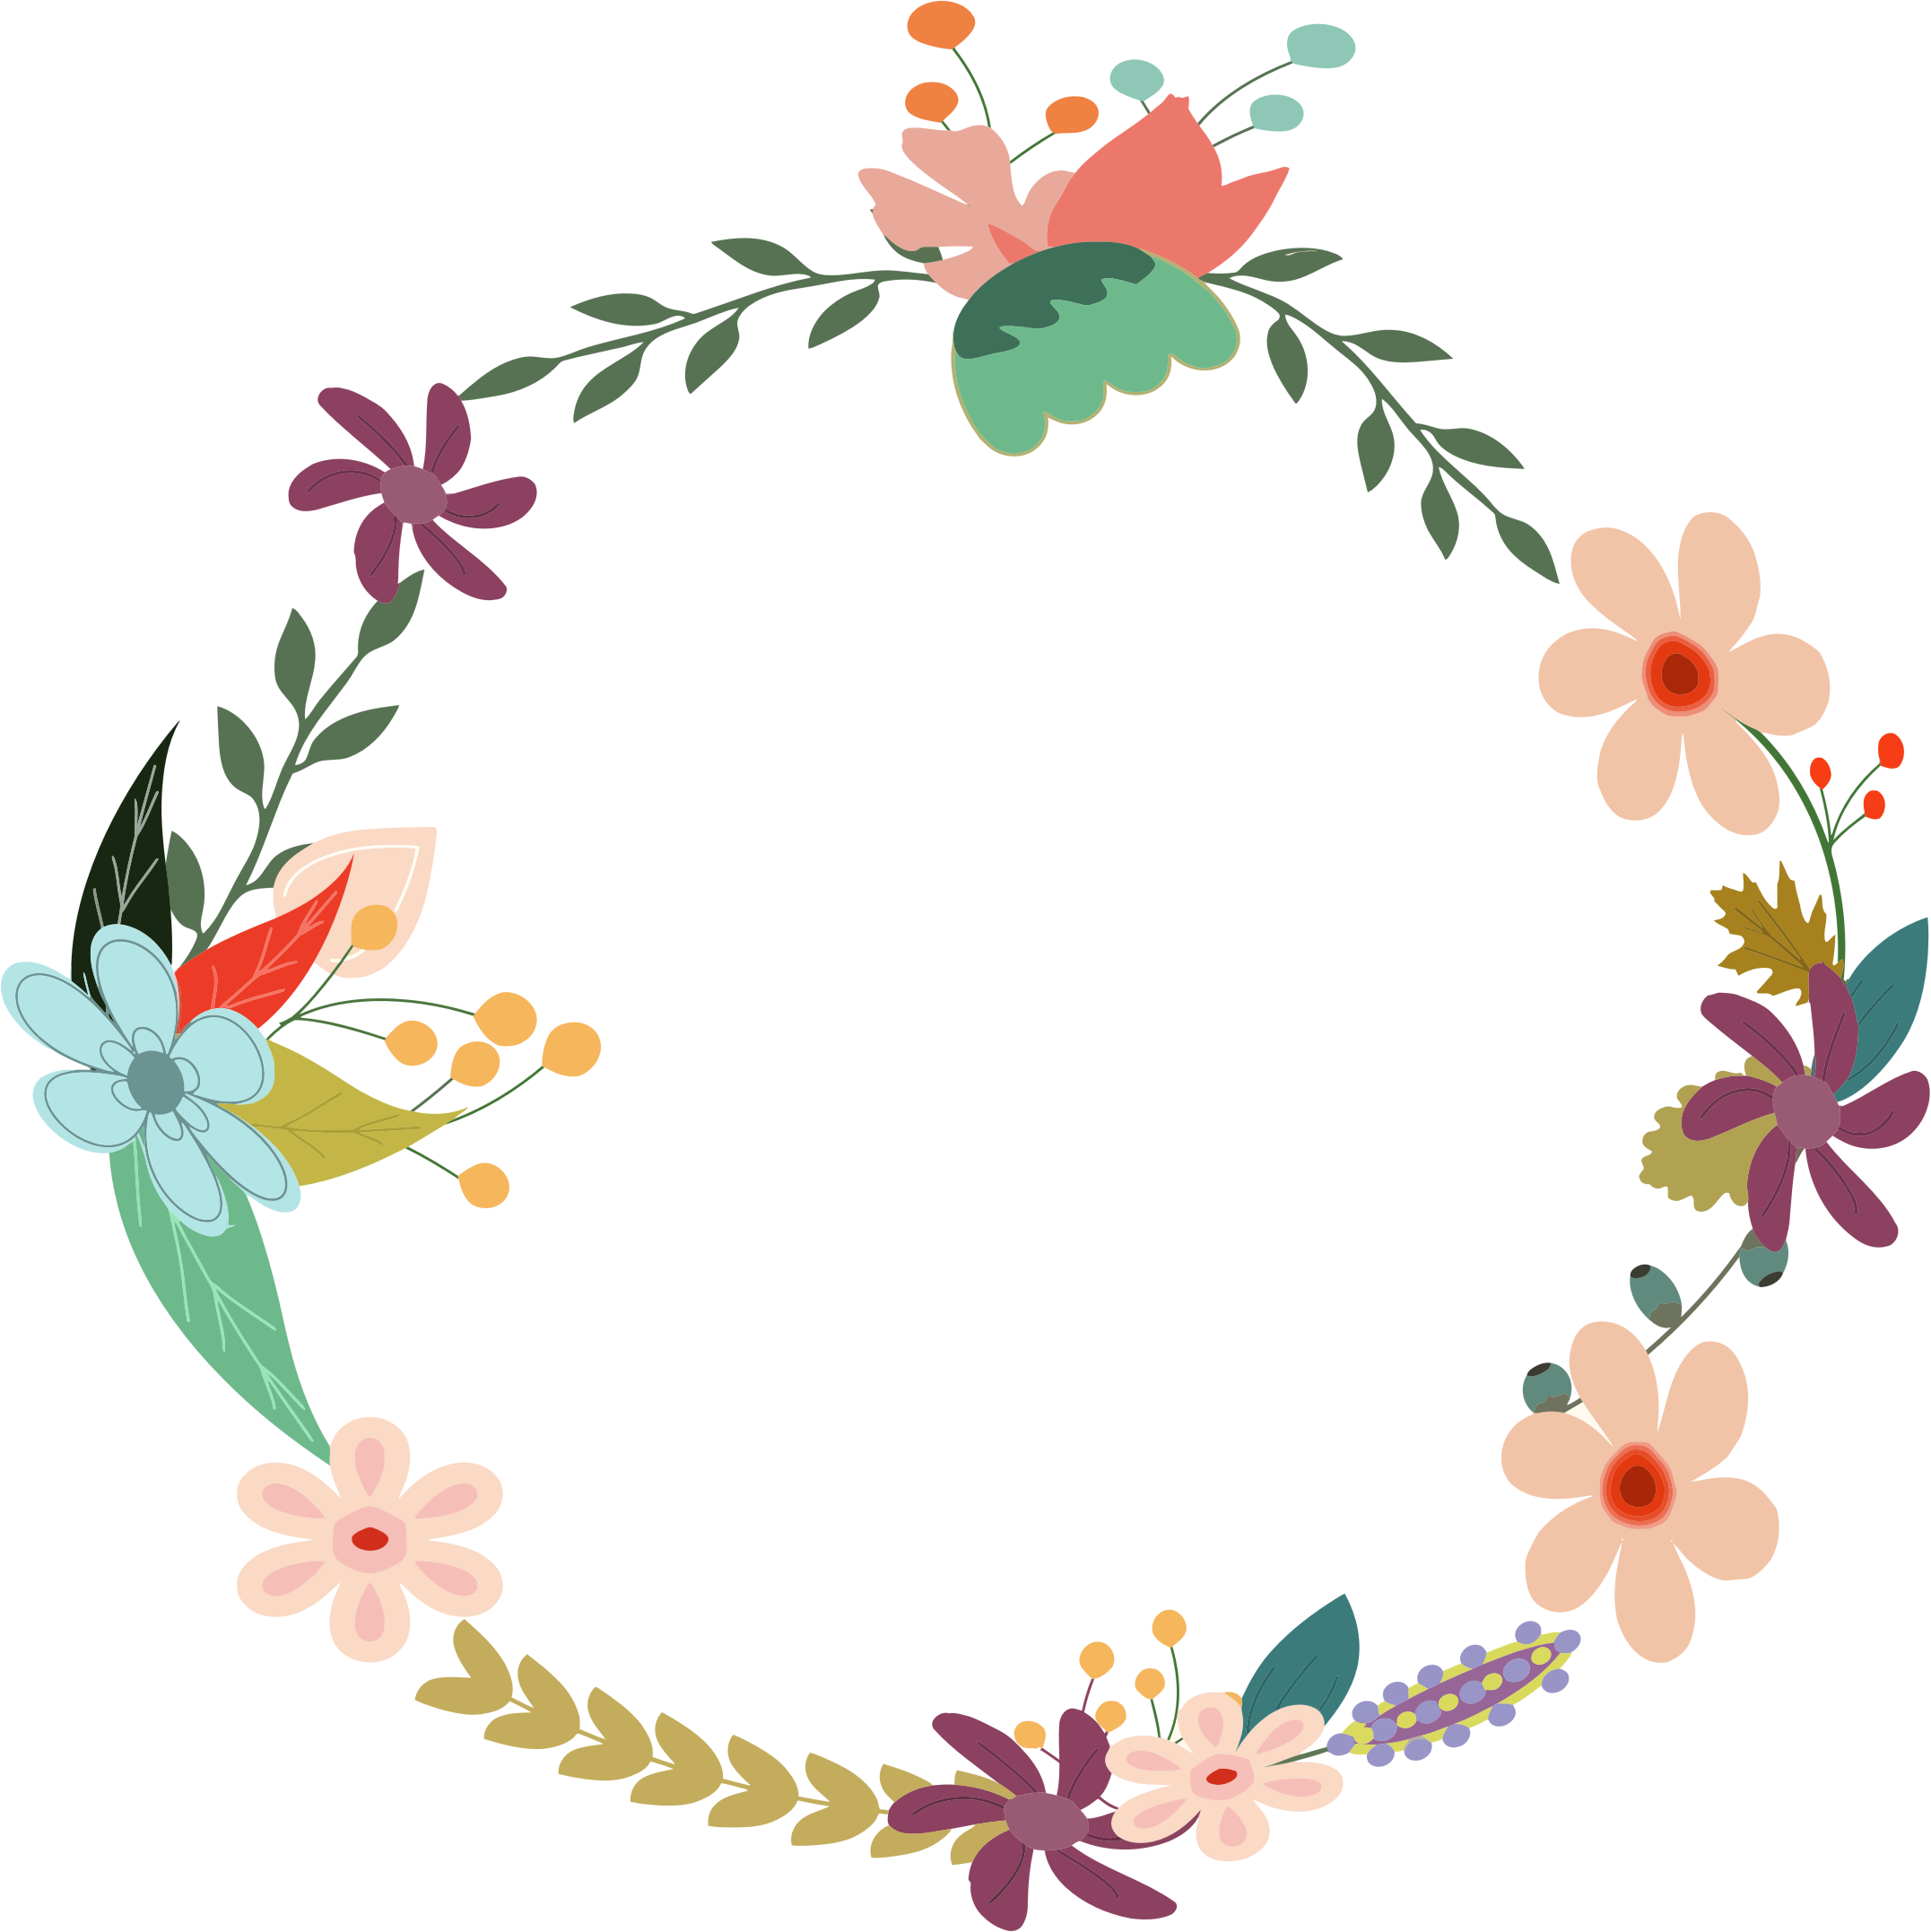 Vintage Floral Wreath by GDJ